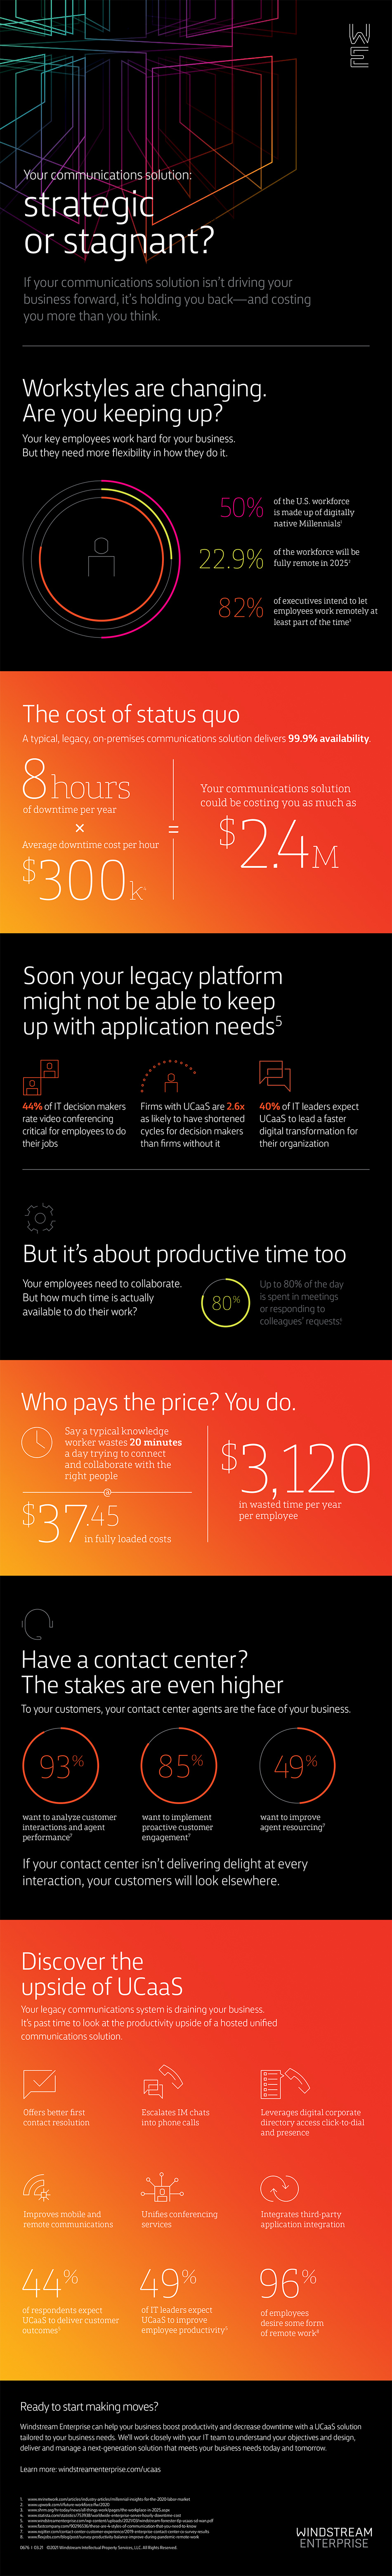 Image of Infographic: Is your communications solution strategic or stagnant?